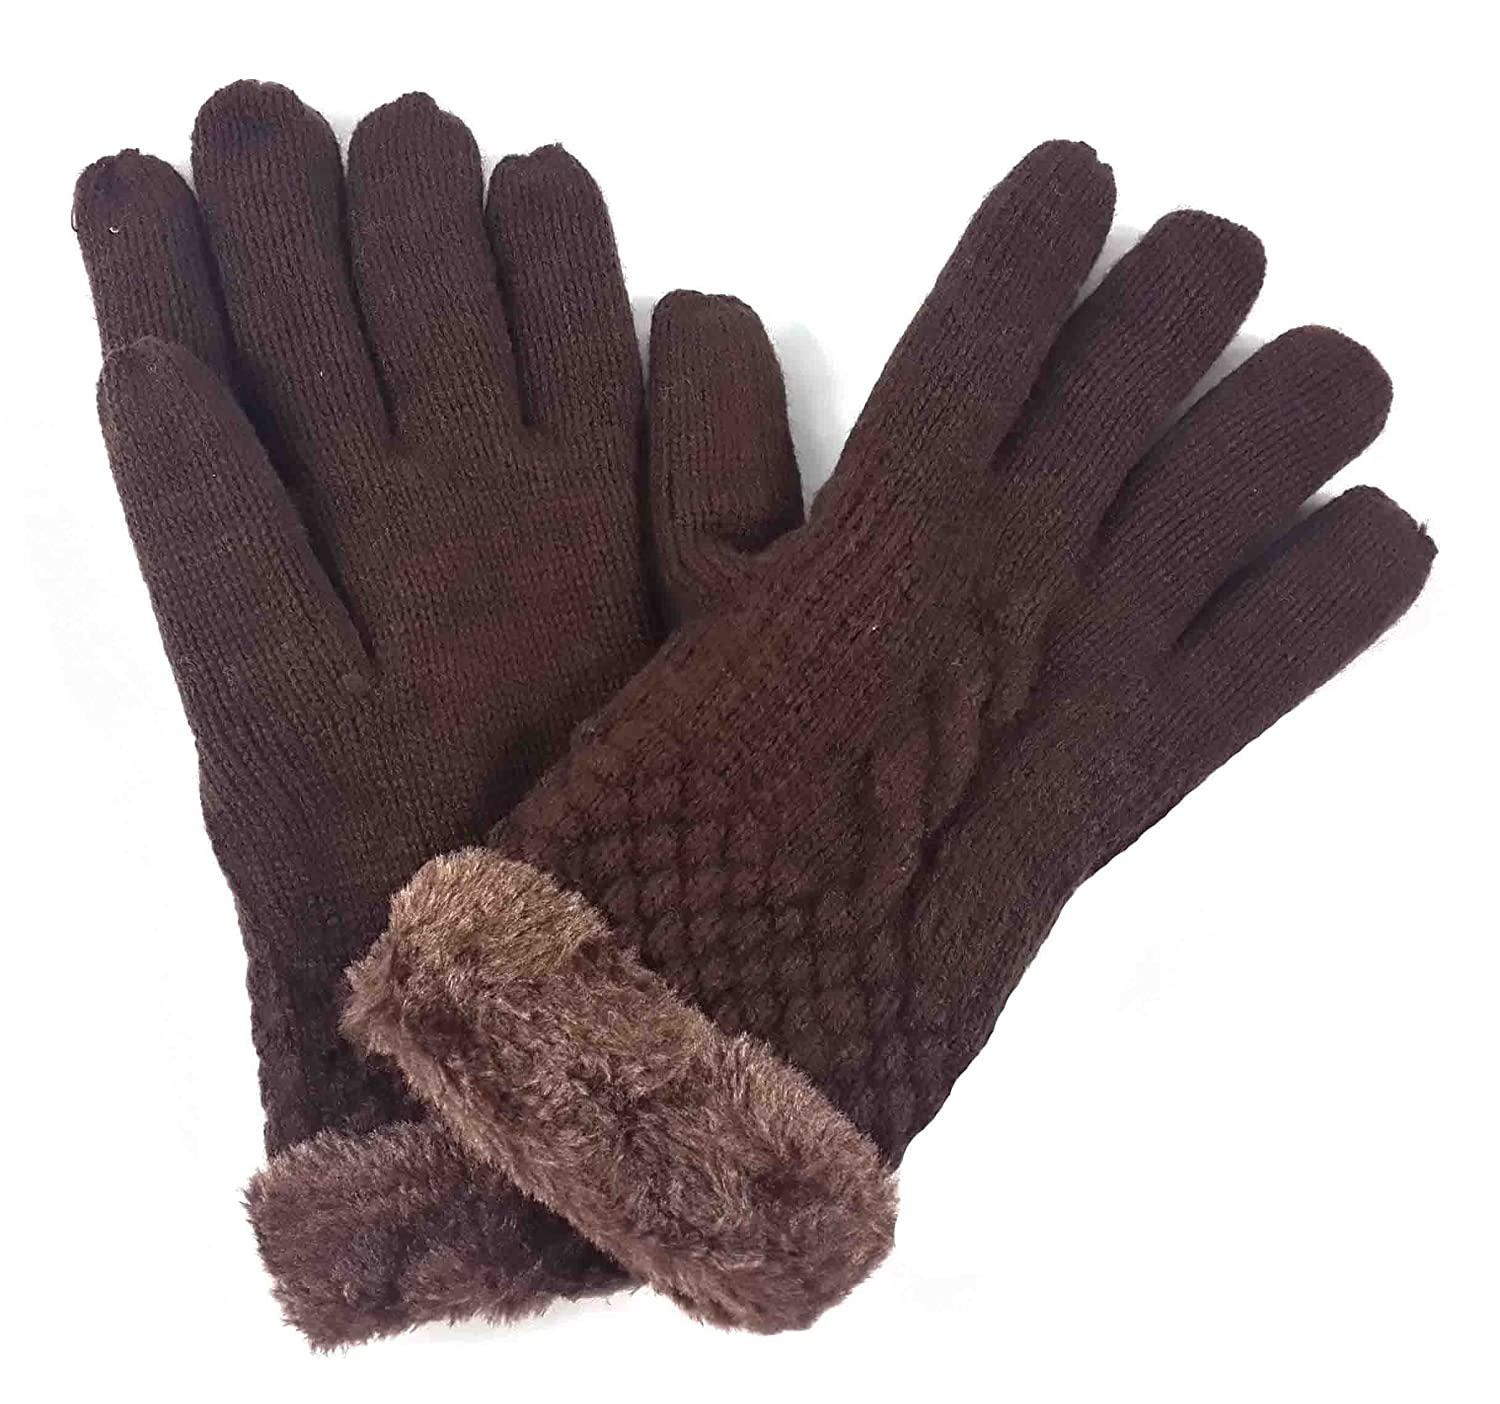 Lina & Lily Fashion Women's Winter Knitted Warm Gloves Faux Fur Trim (Black)